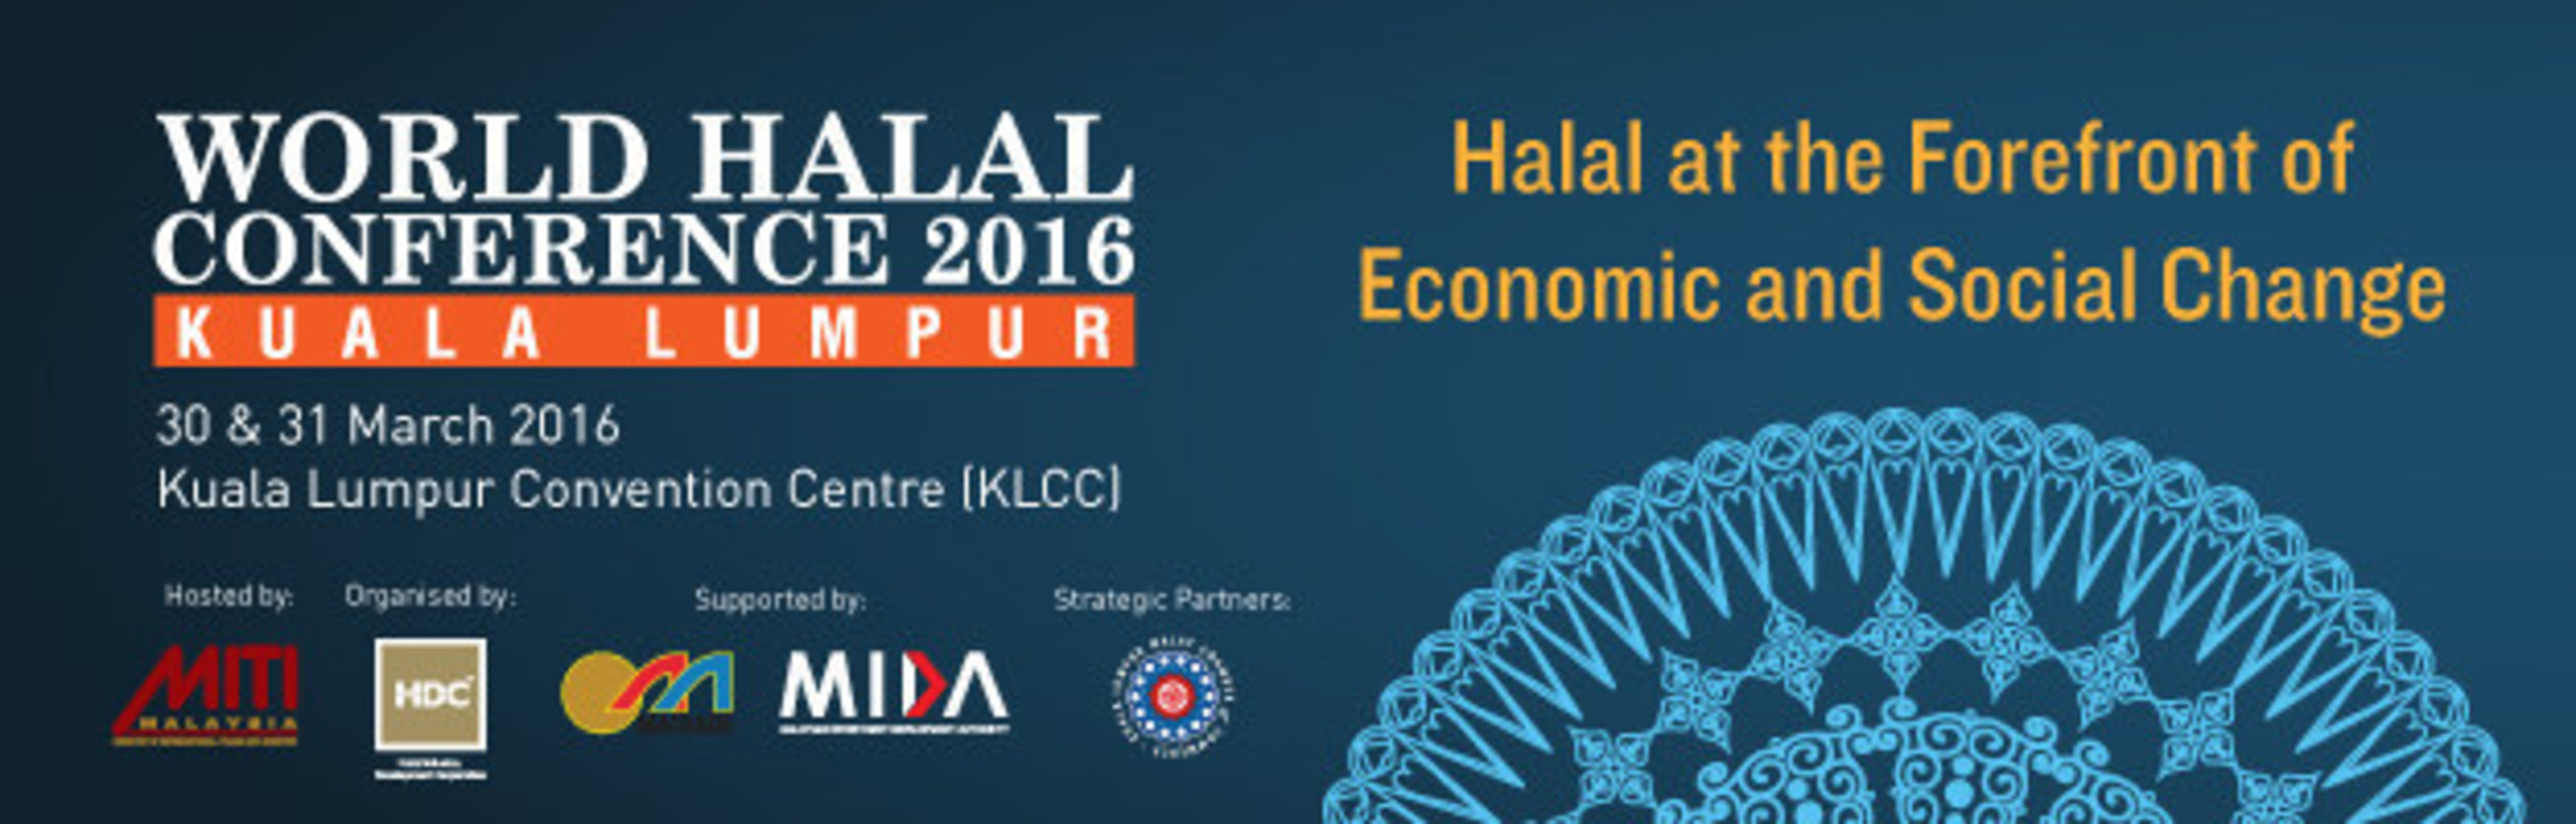 World Halal Conference 2016 on 30th & 31st March at Kuala Lumpur City Centre, Malaysia